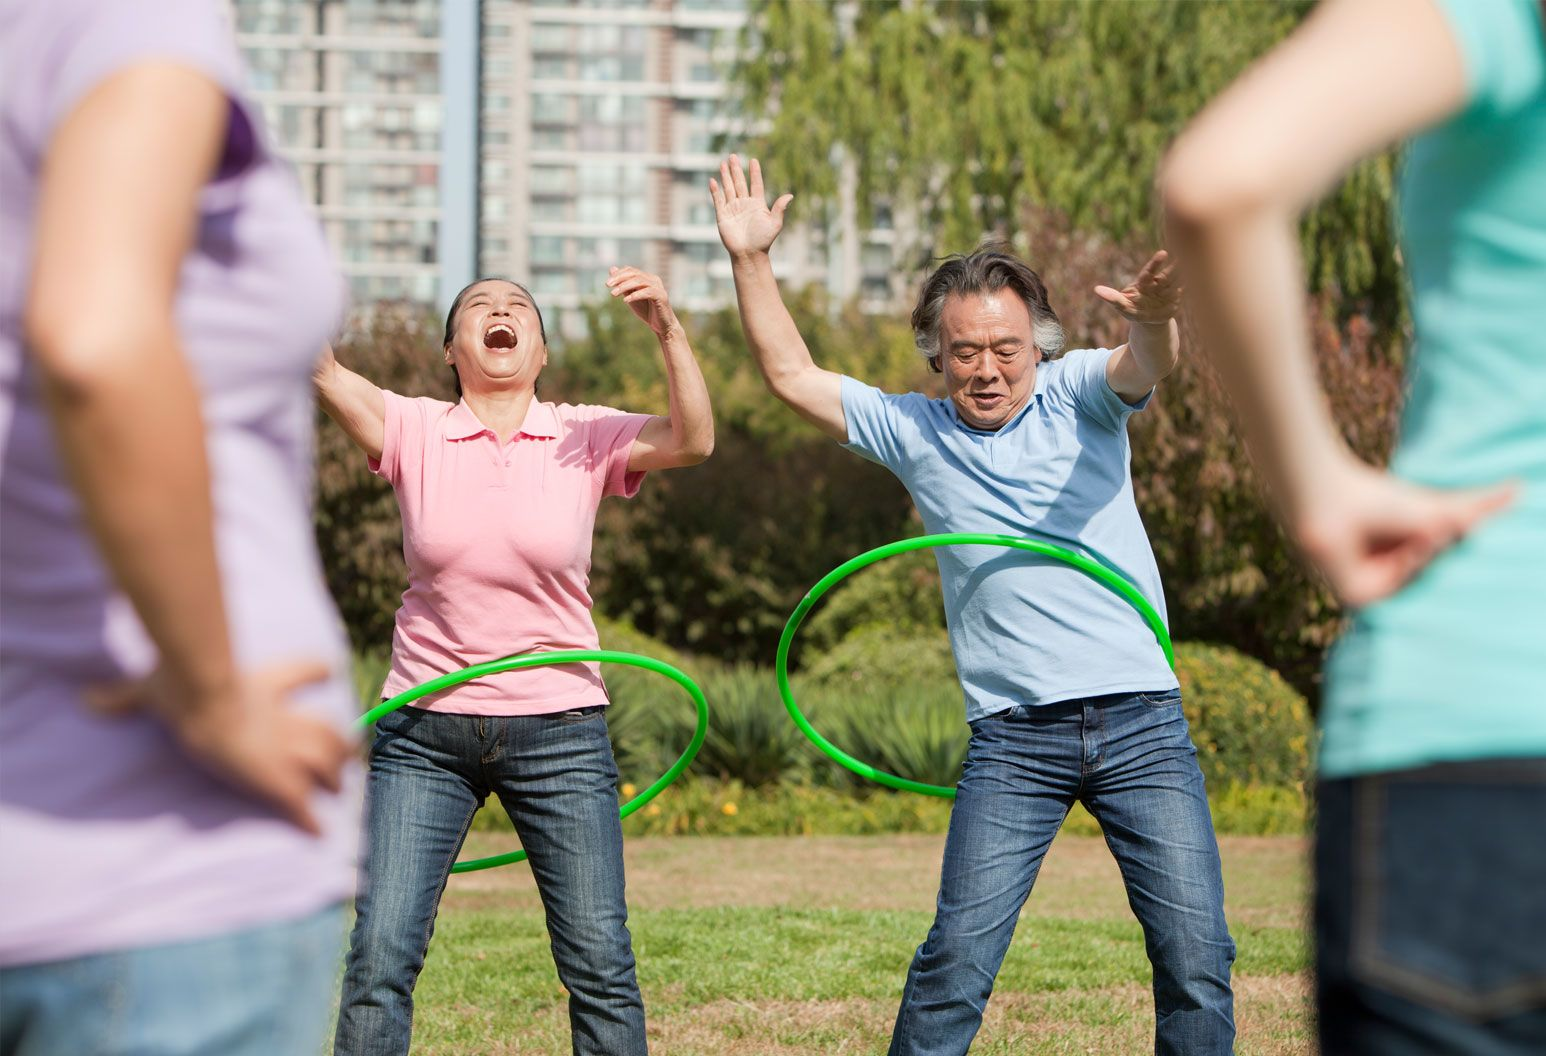 A man and woman are hoola-hooping in a field. They have their arms up and the woman's head is thrown back as she laughs. Two other people stand in the front of the frame with their hands on their hips.